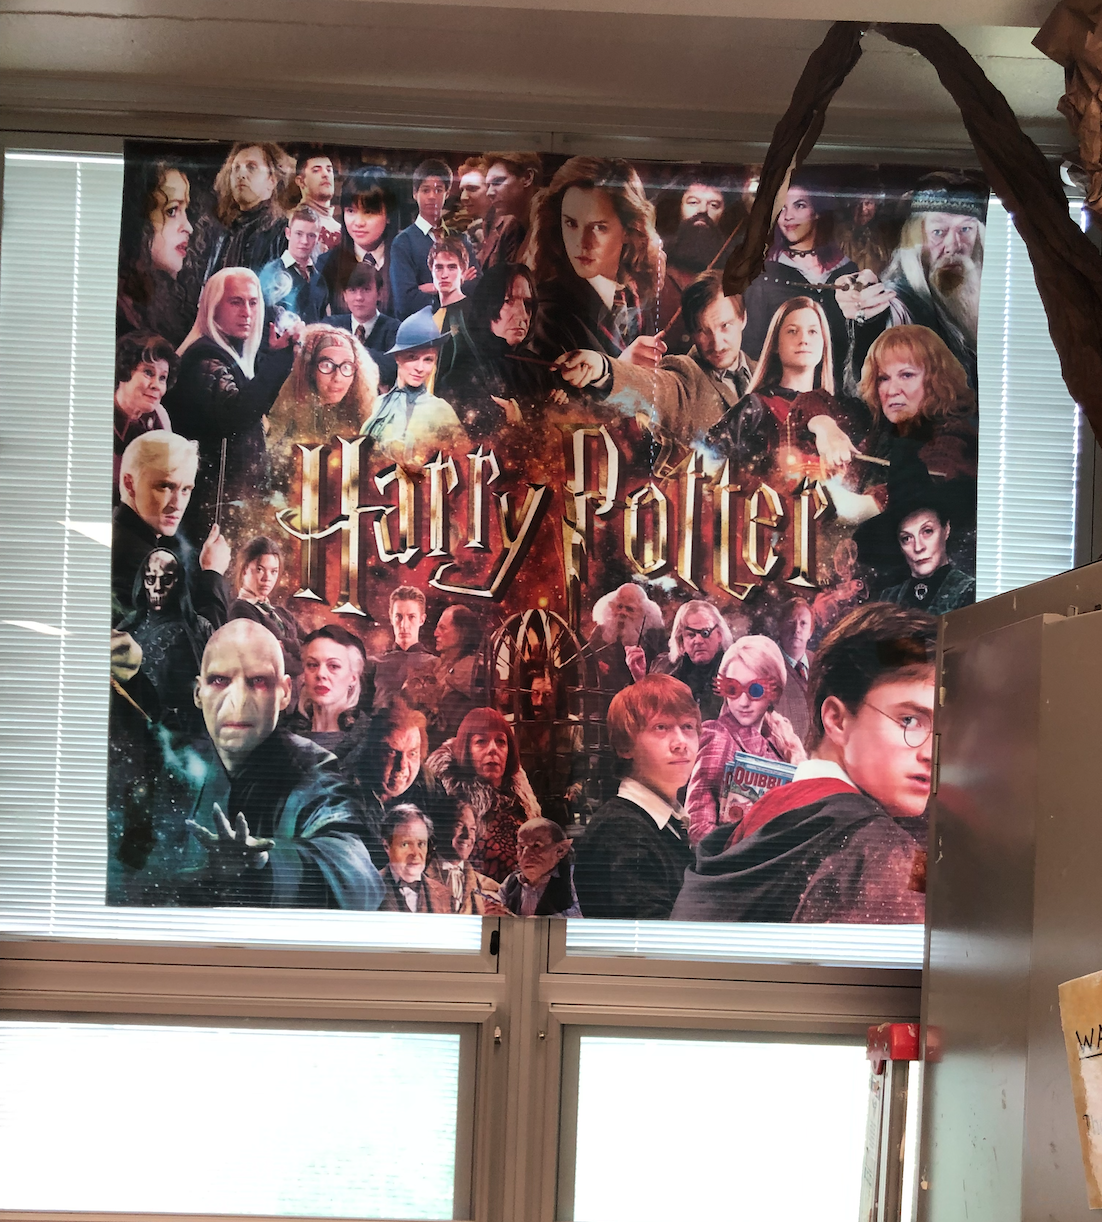 Just a good-looking tapestry of some AMAZING people. (Yes, I know they are fictional, but...)